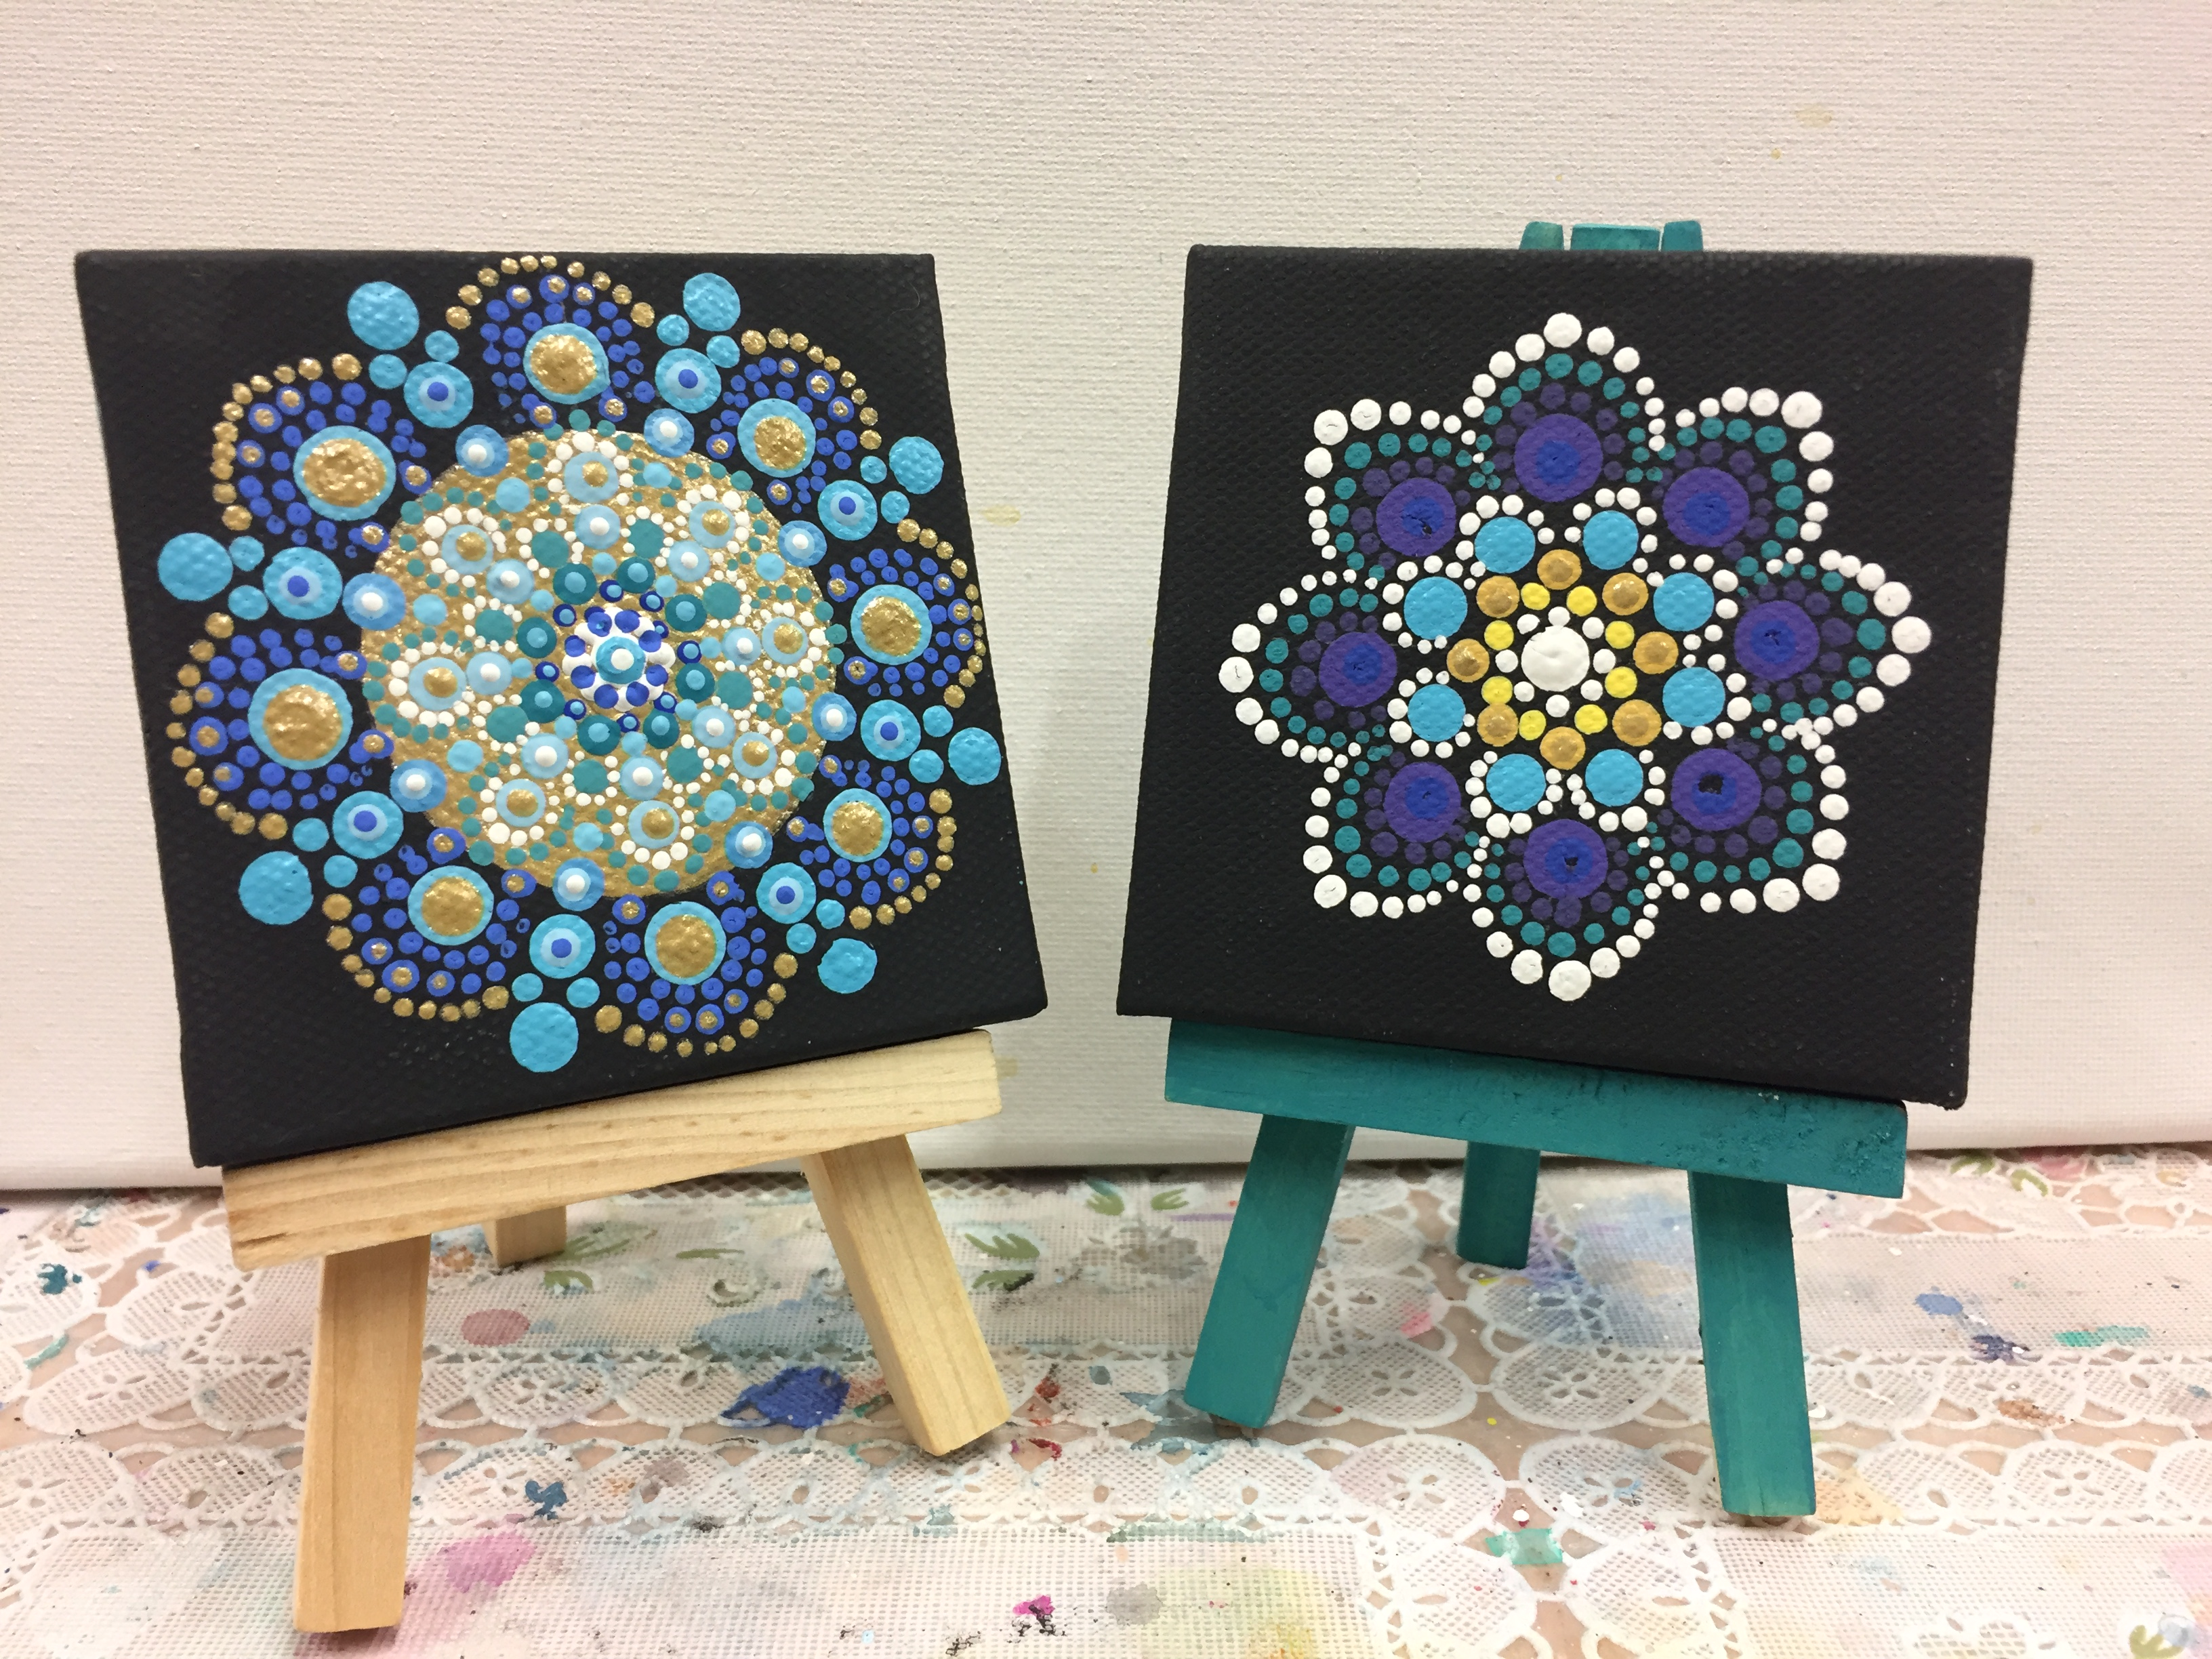 Mini Mandalas by Jess